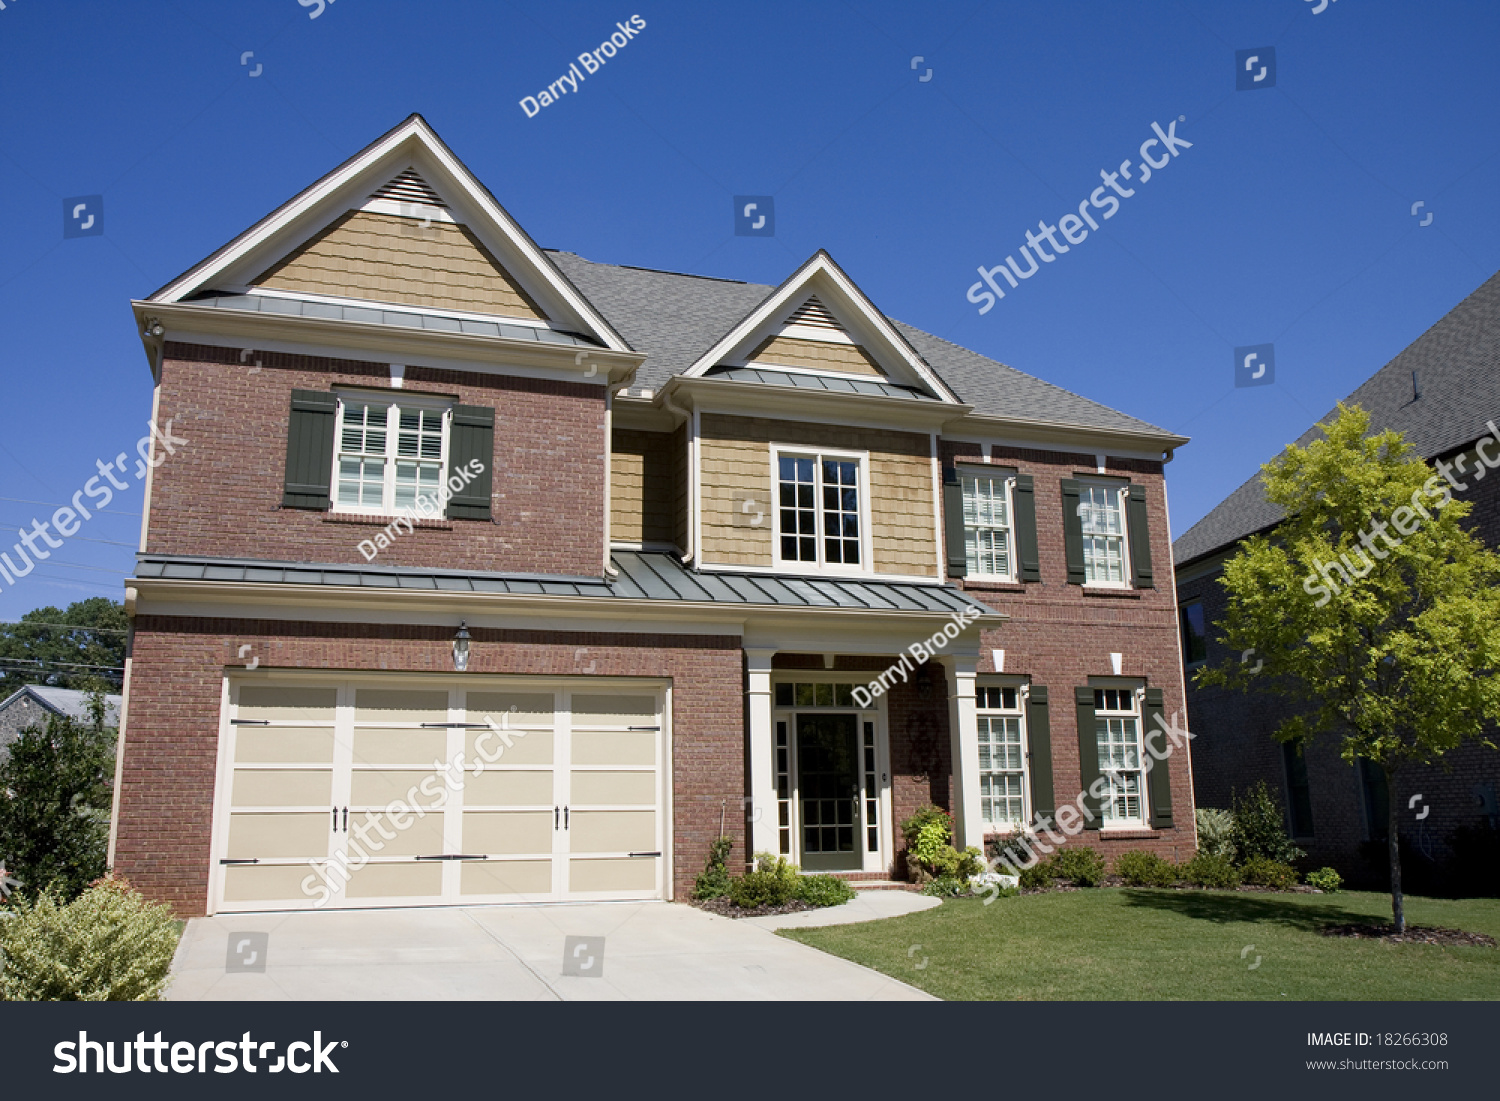 Nice house brick wood siding clear stock photo 18266308 Nice house music